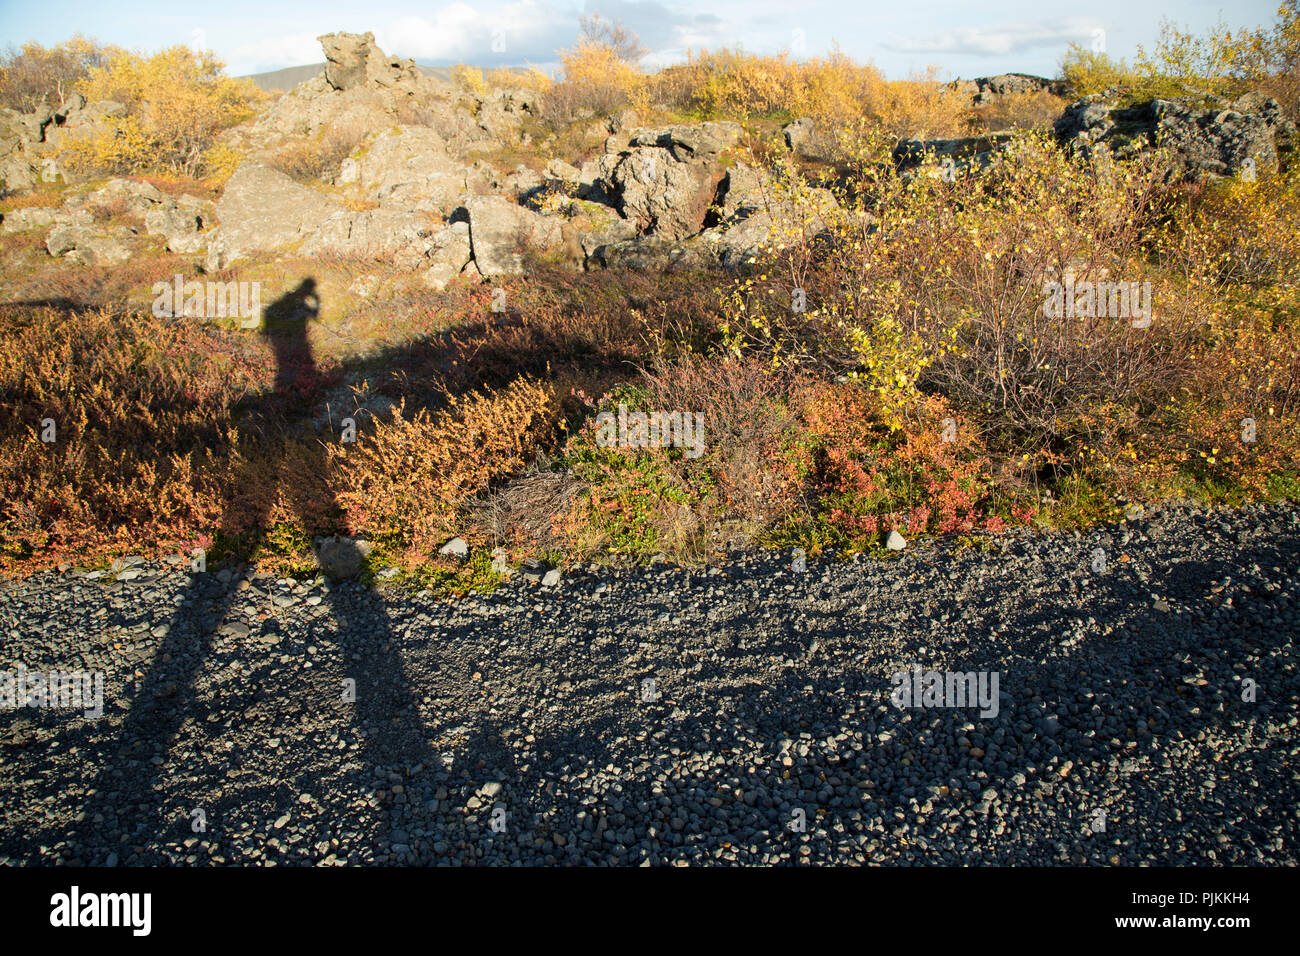 Iceland, Myvatn, human shadow on the roadside, lava field Dimmuborgir, autumnal foliage, dwarf birches, - Stock Image